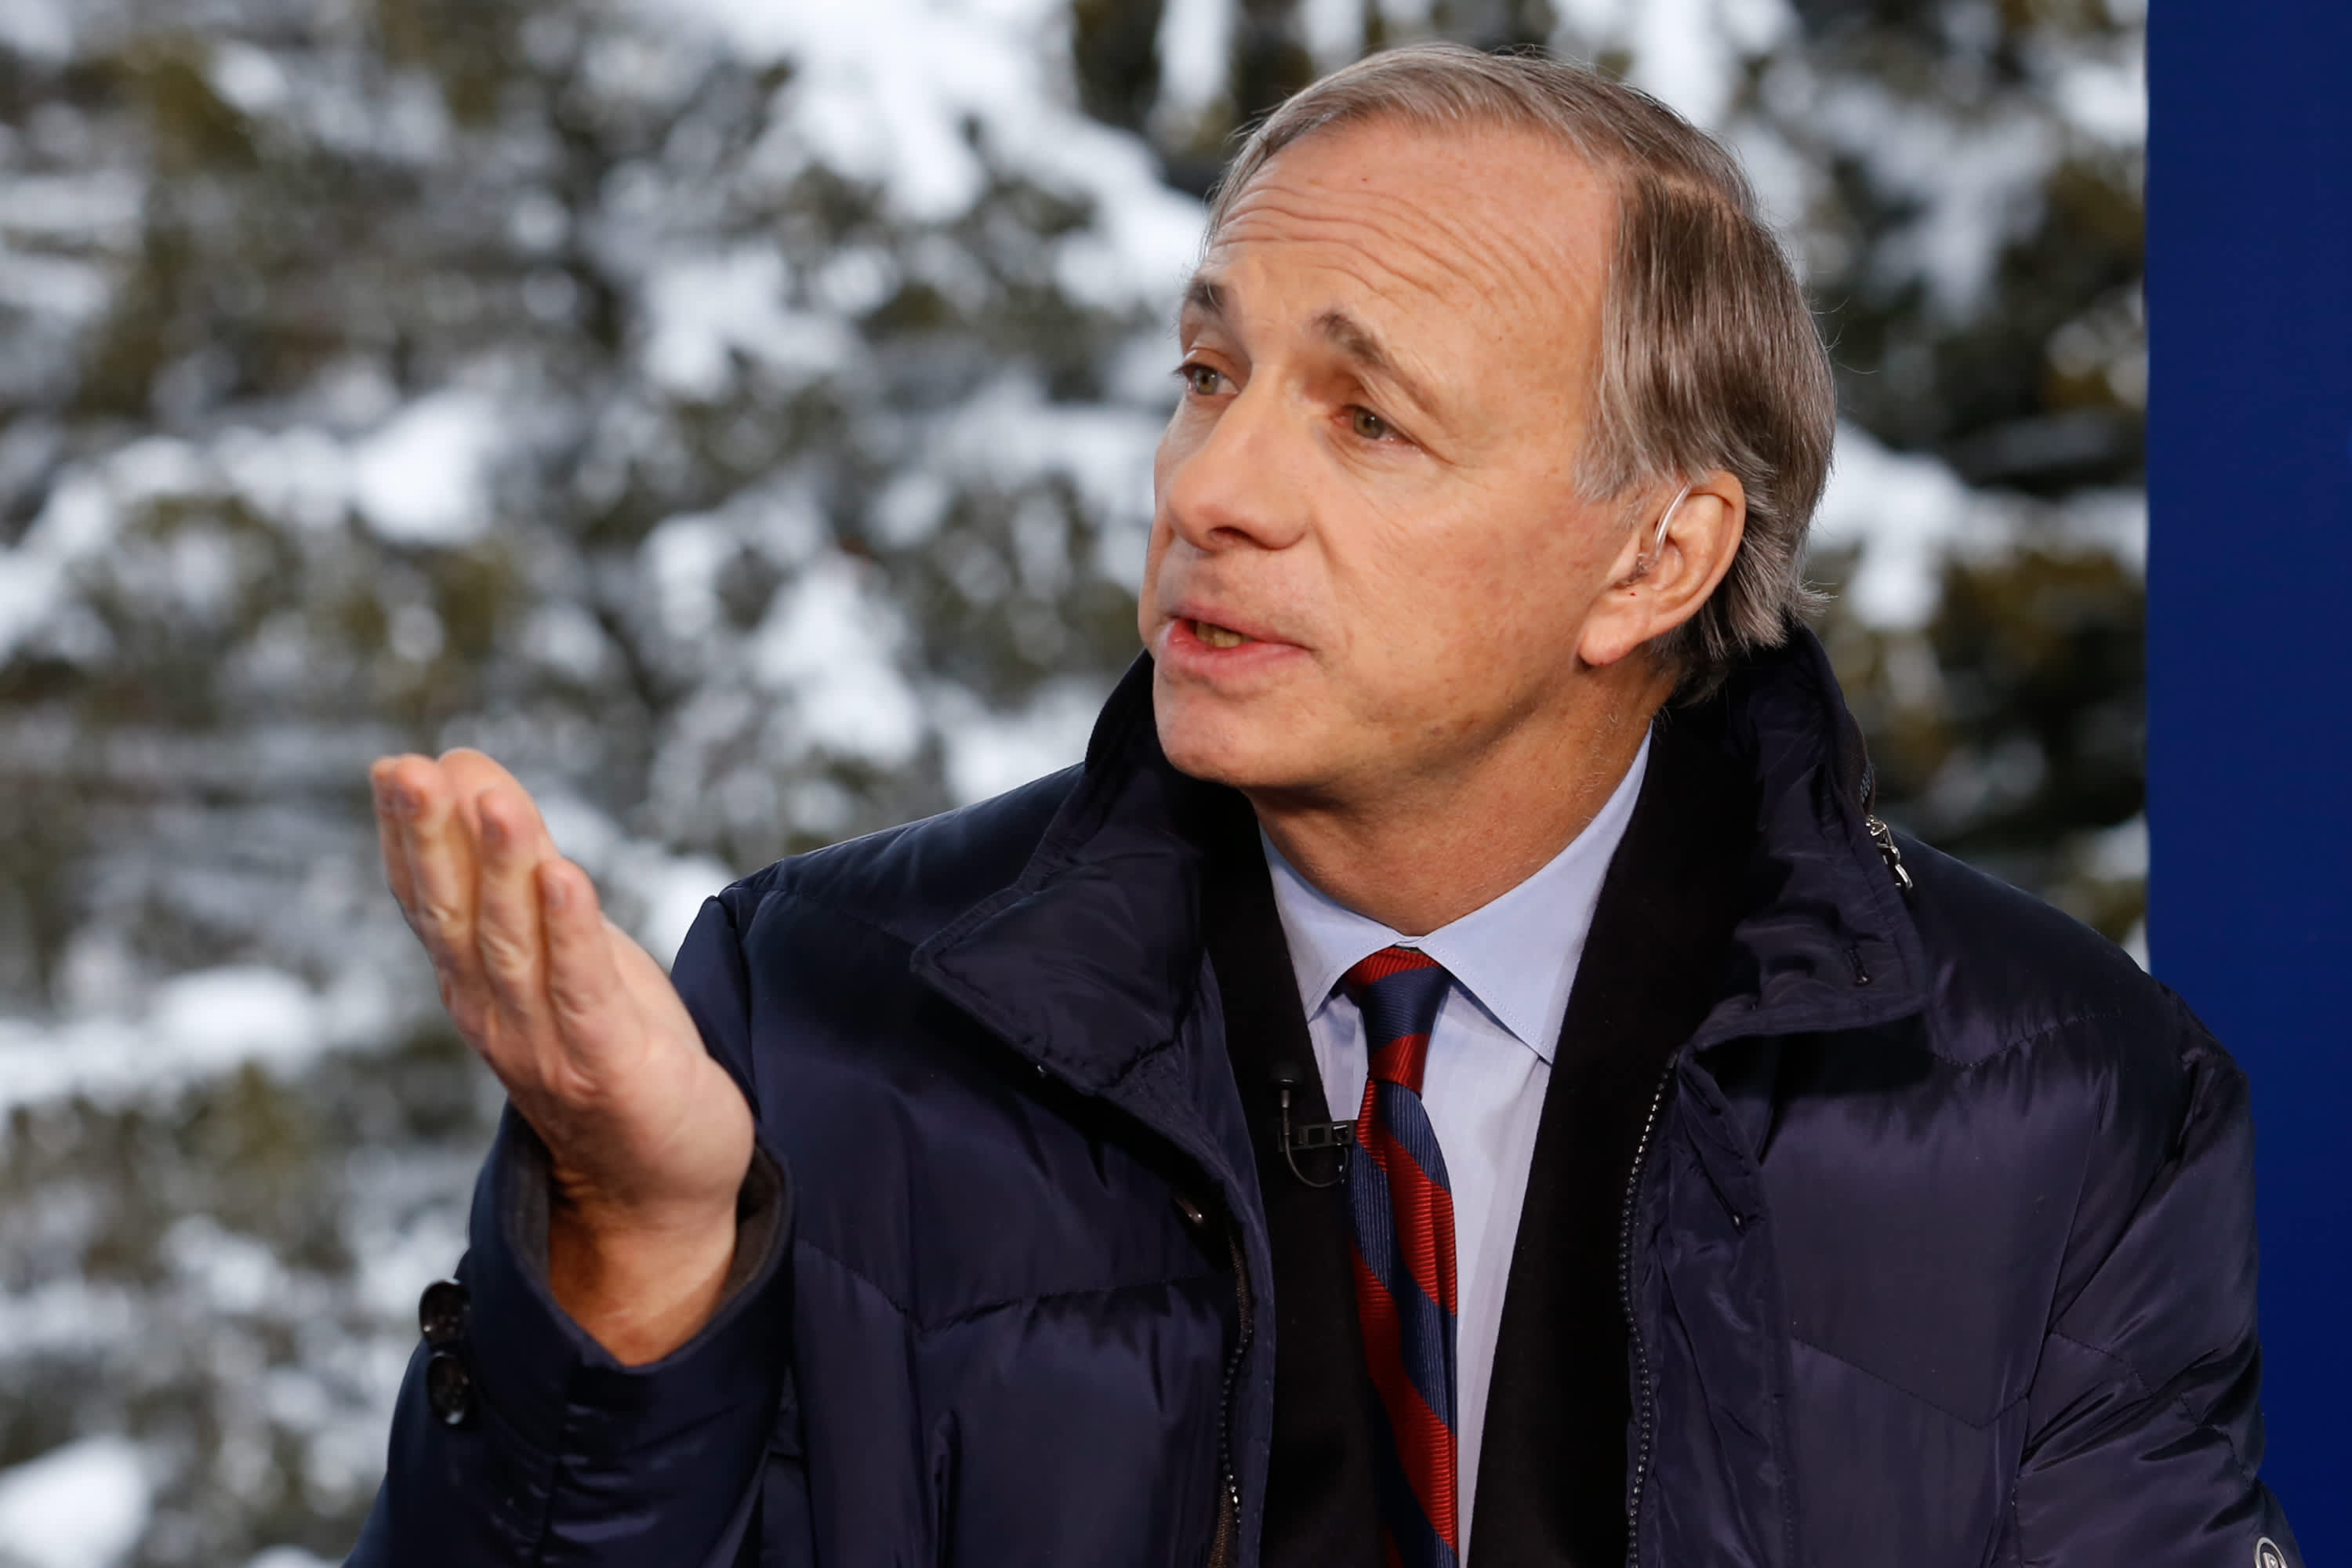 Billionaire Ray Dalio says these 3 books have 'had the biggest impact' on his life